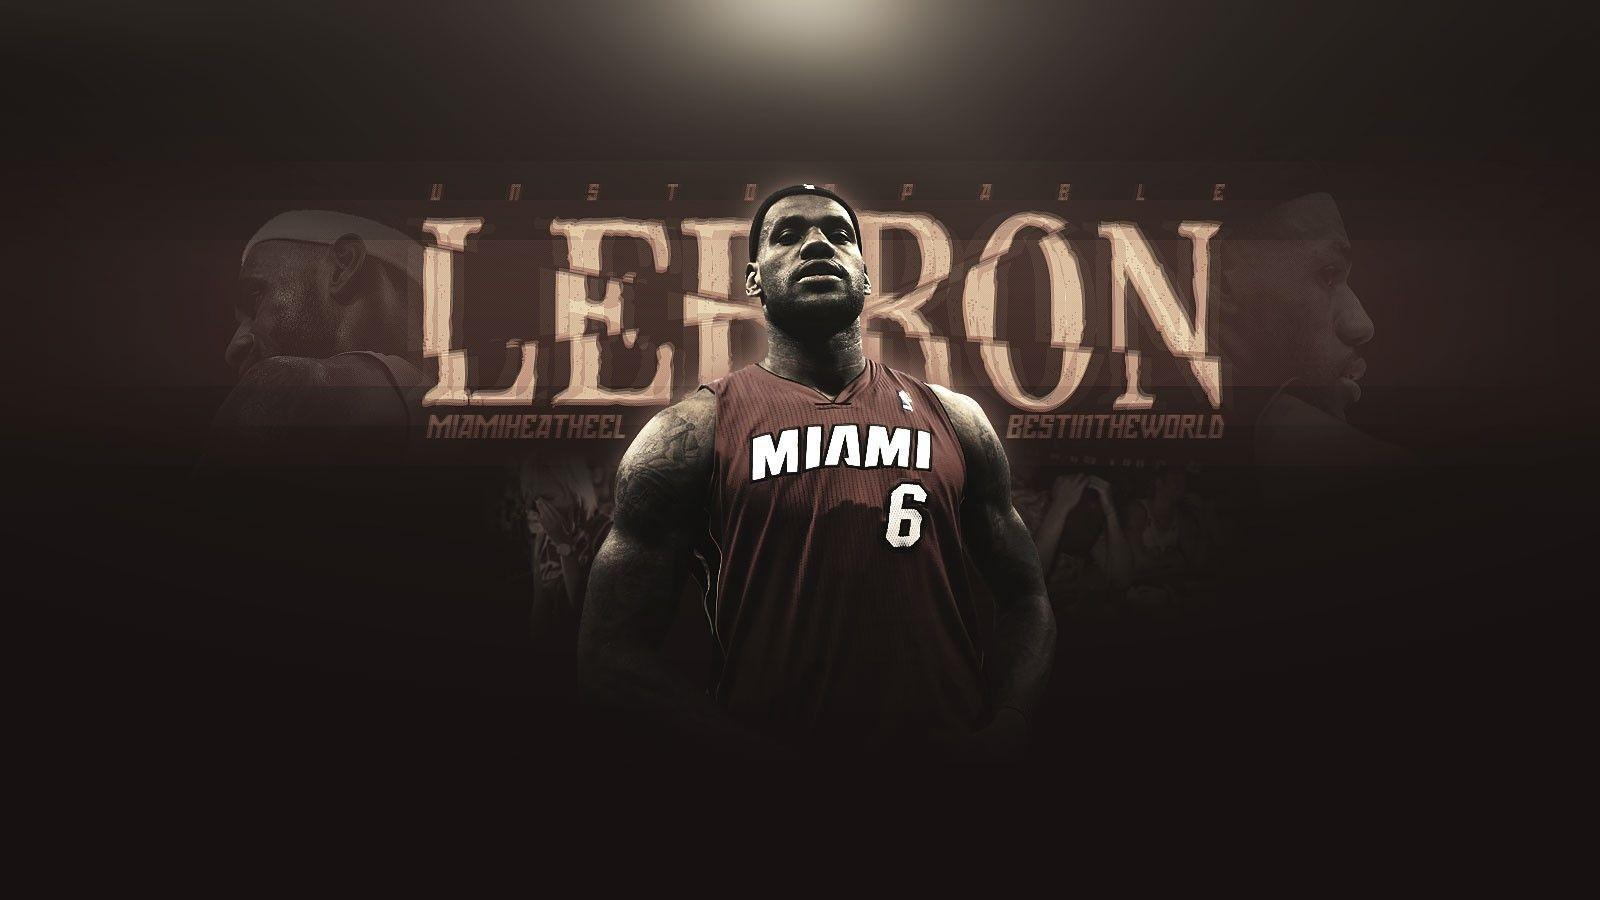 LeBron James Wallpaper | 1600x900 | ID:31627